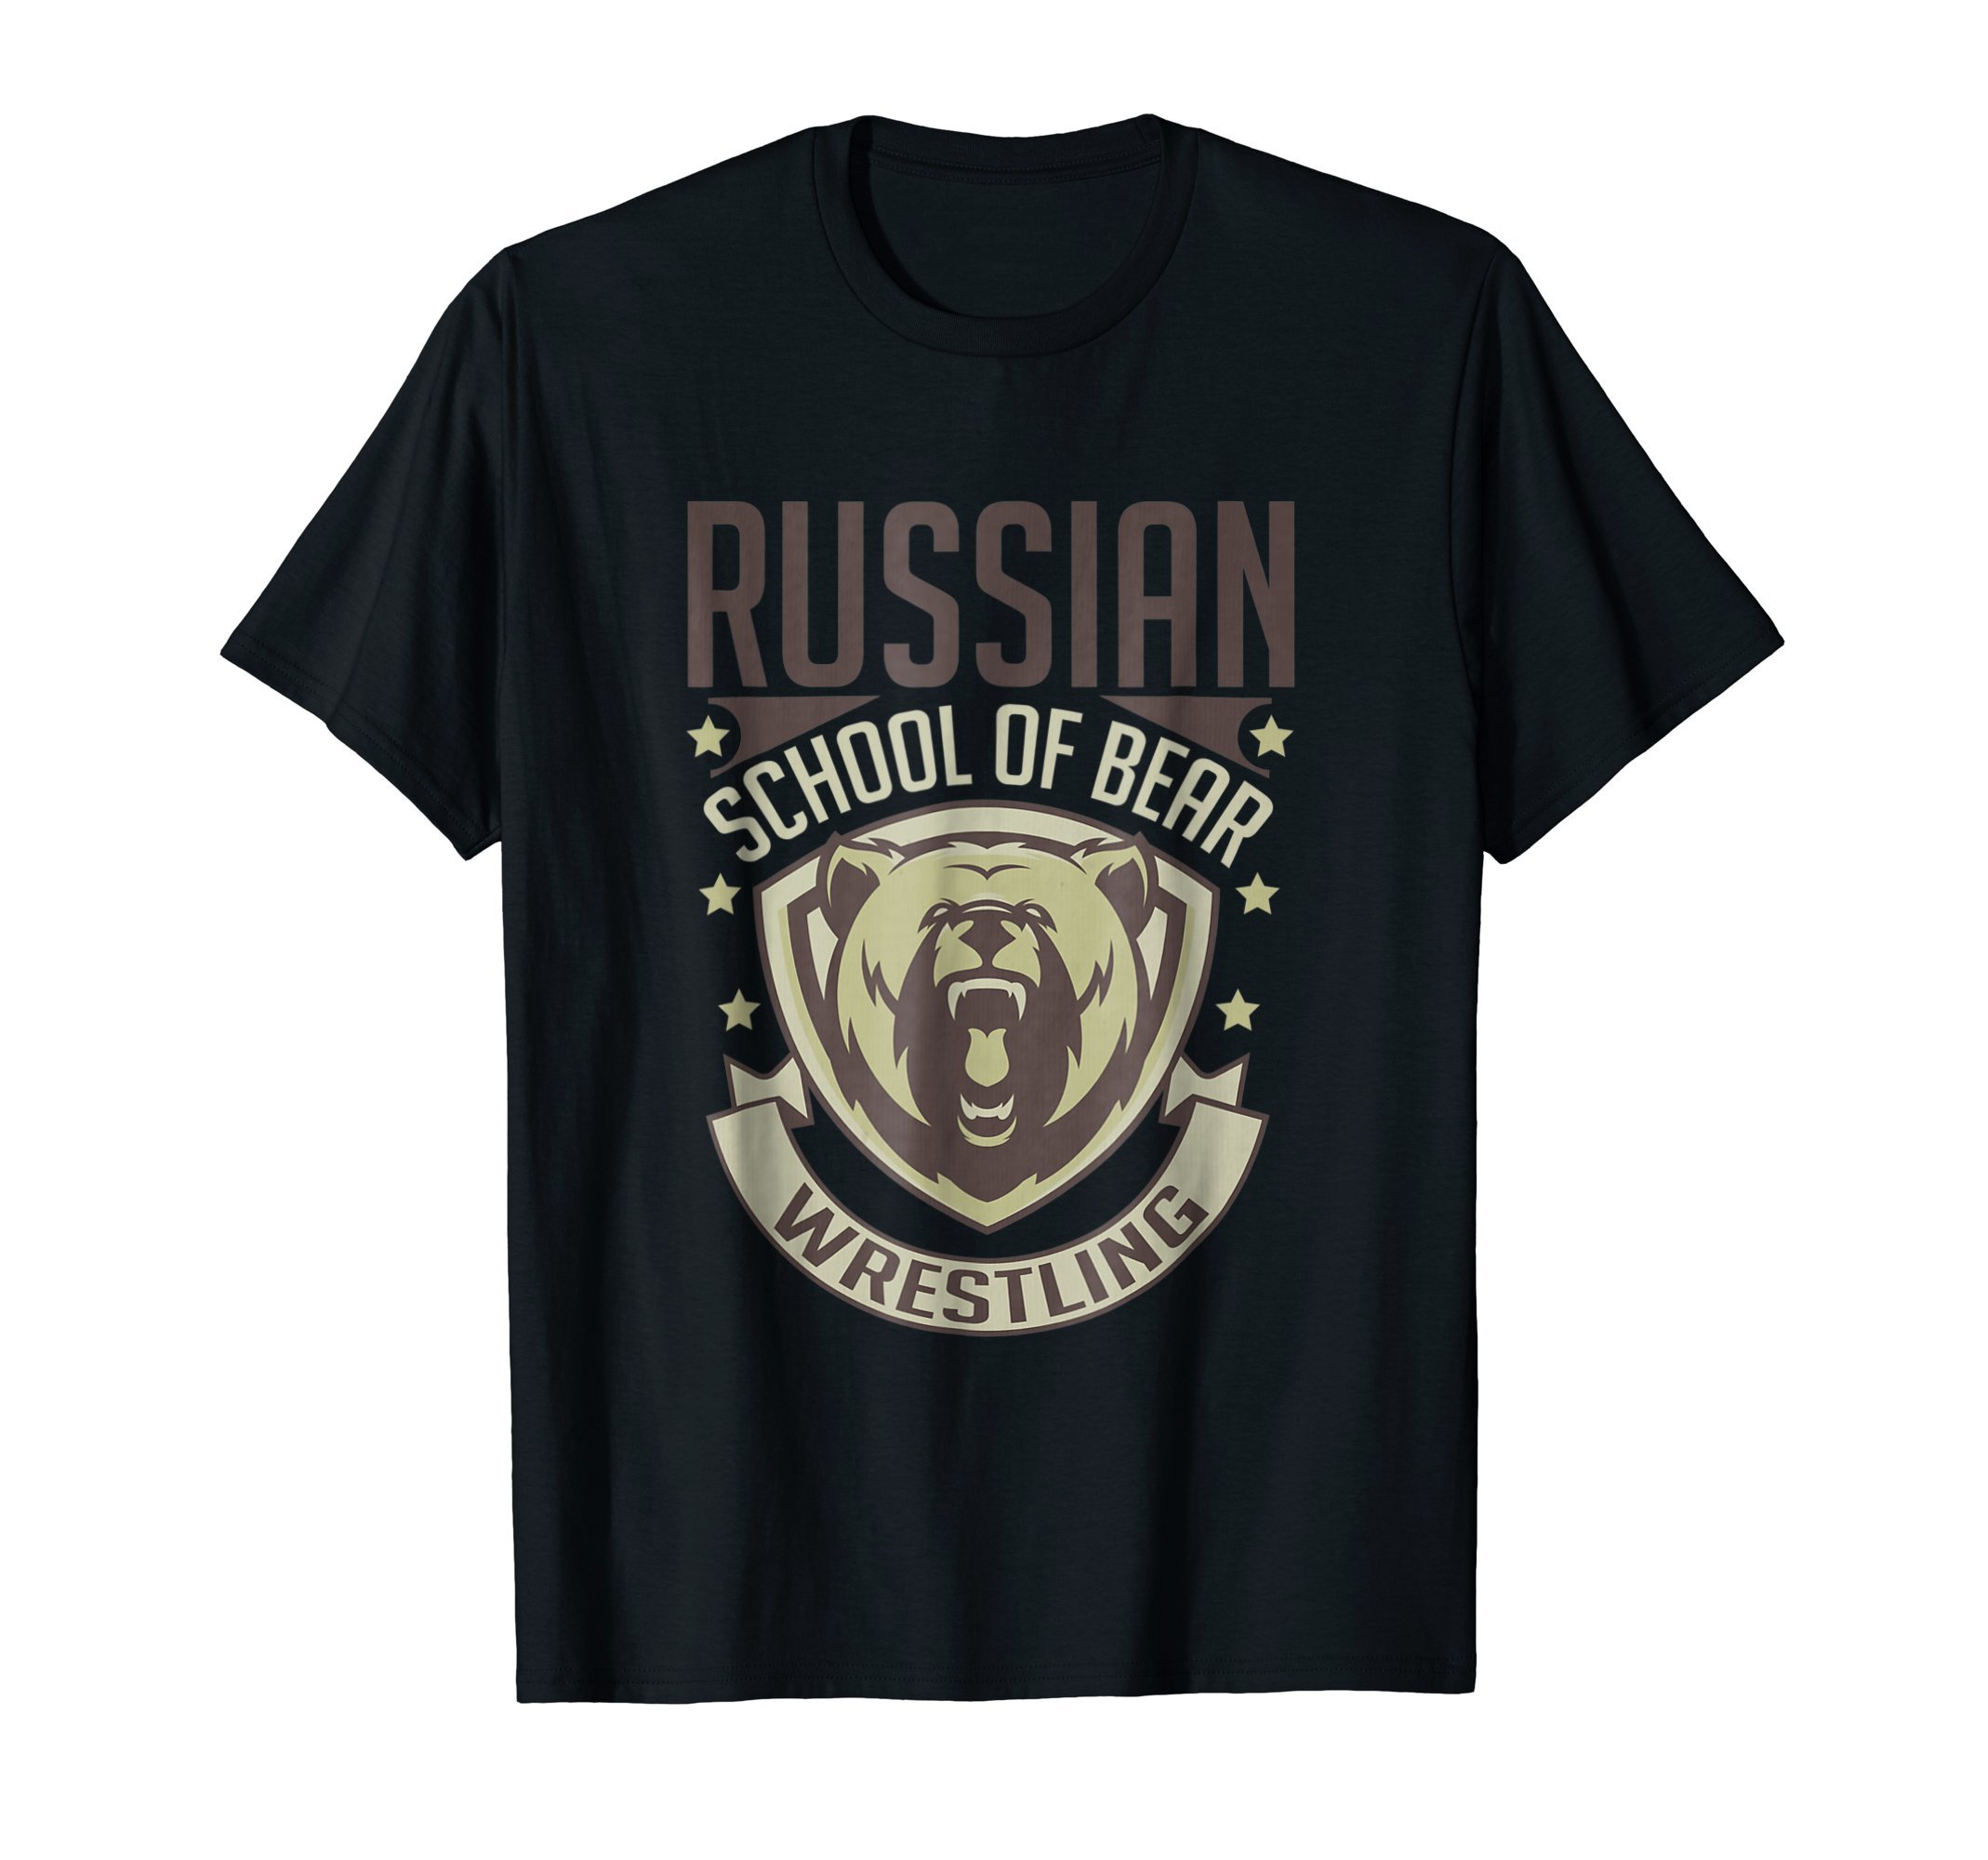 Russian Bear Wrestling Vintage Retro MMA T-Shirt by MMA Gi Tees